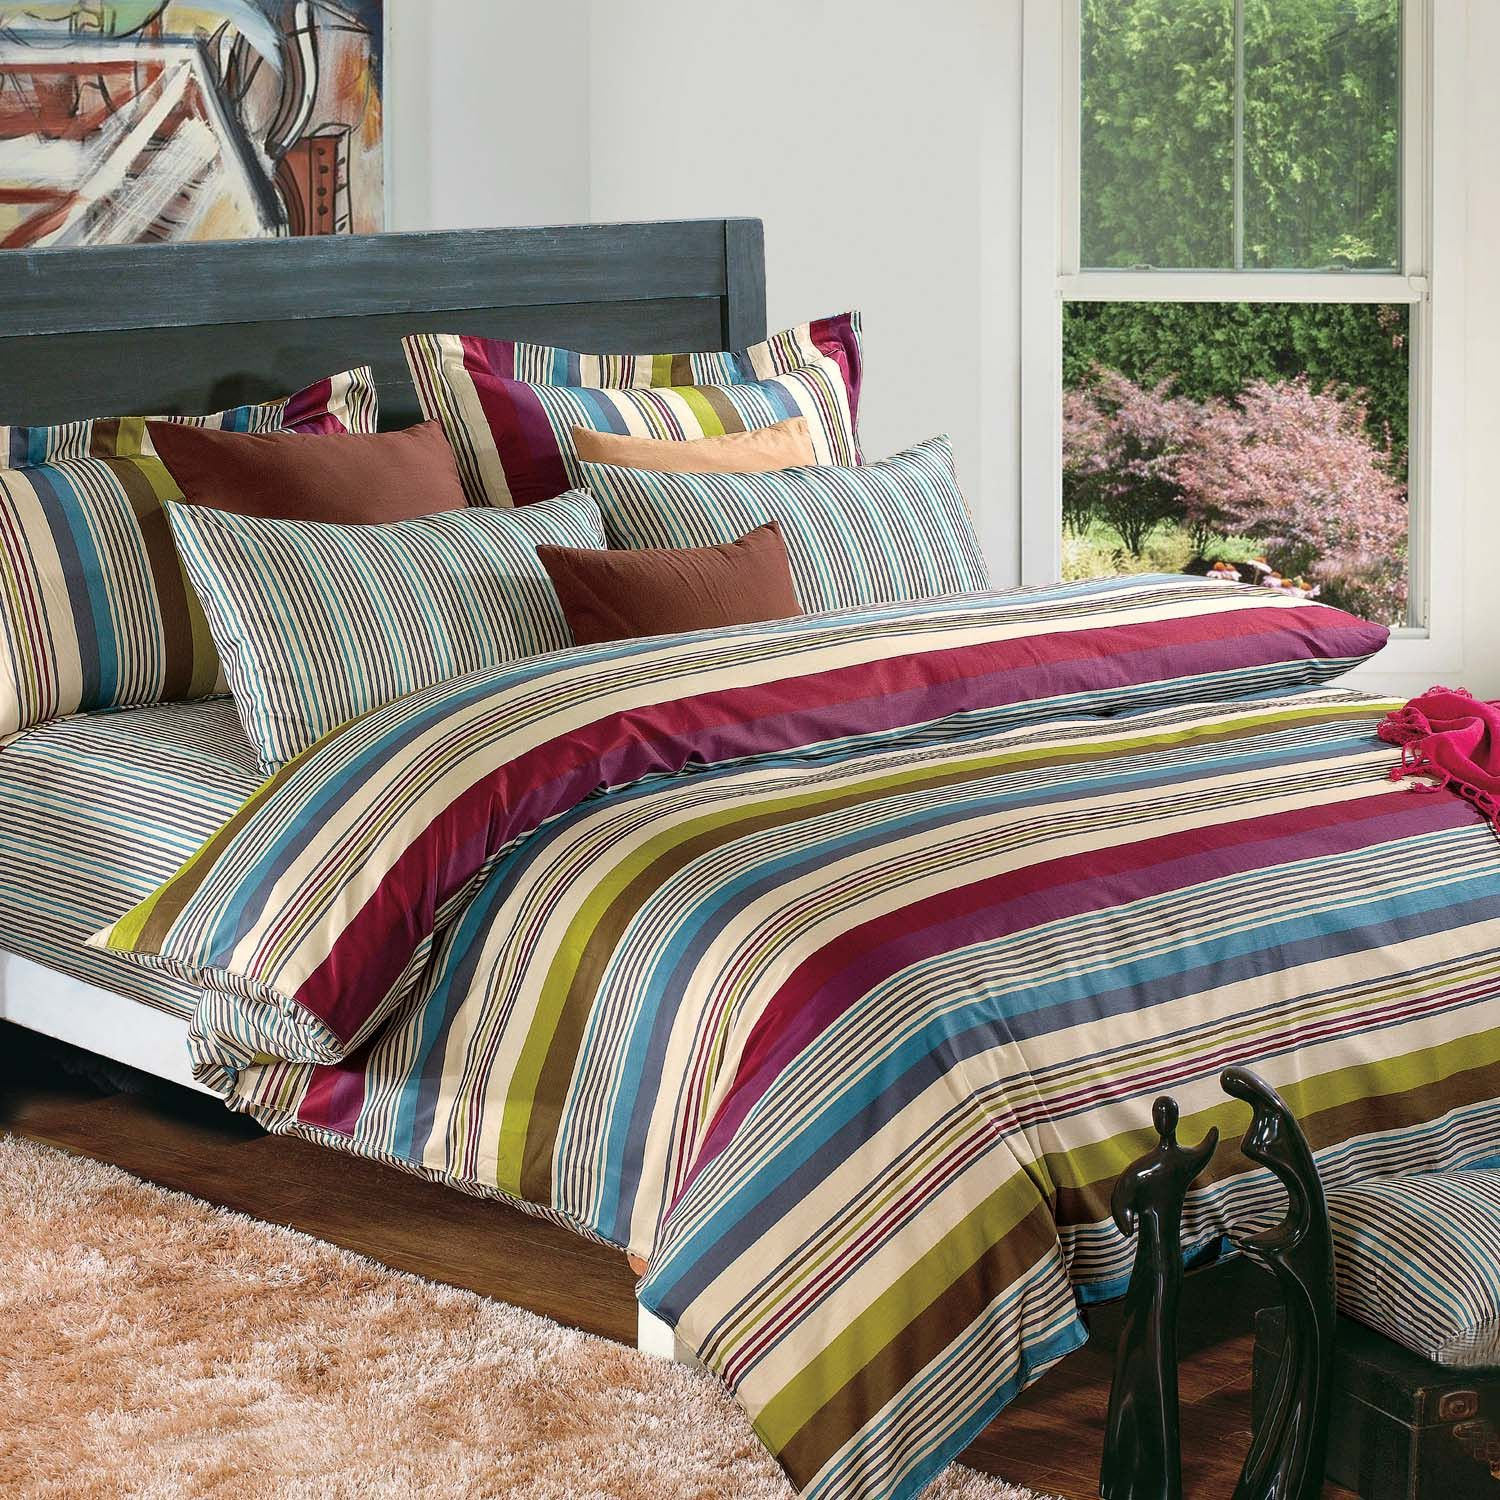 Each set contains one duvet cover, two pillow shams